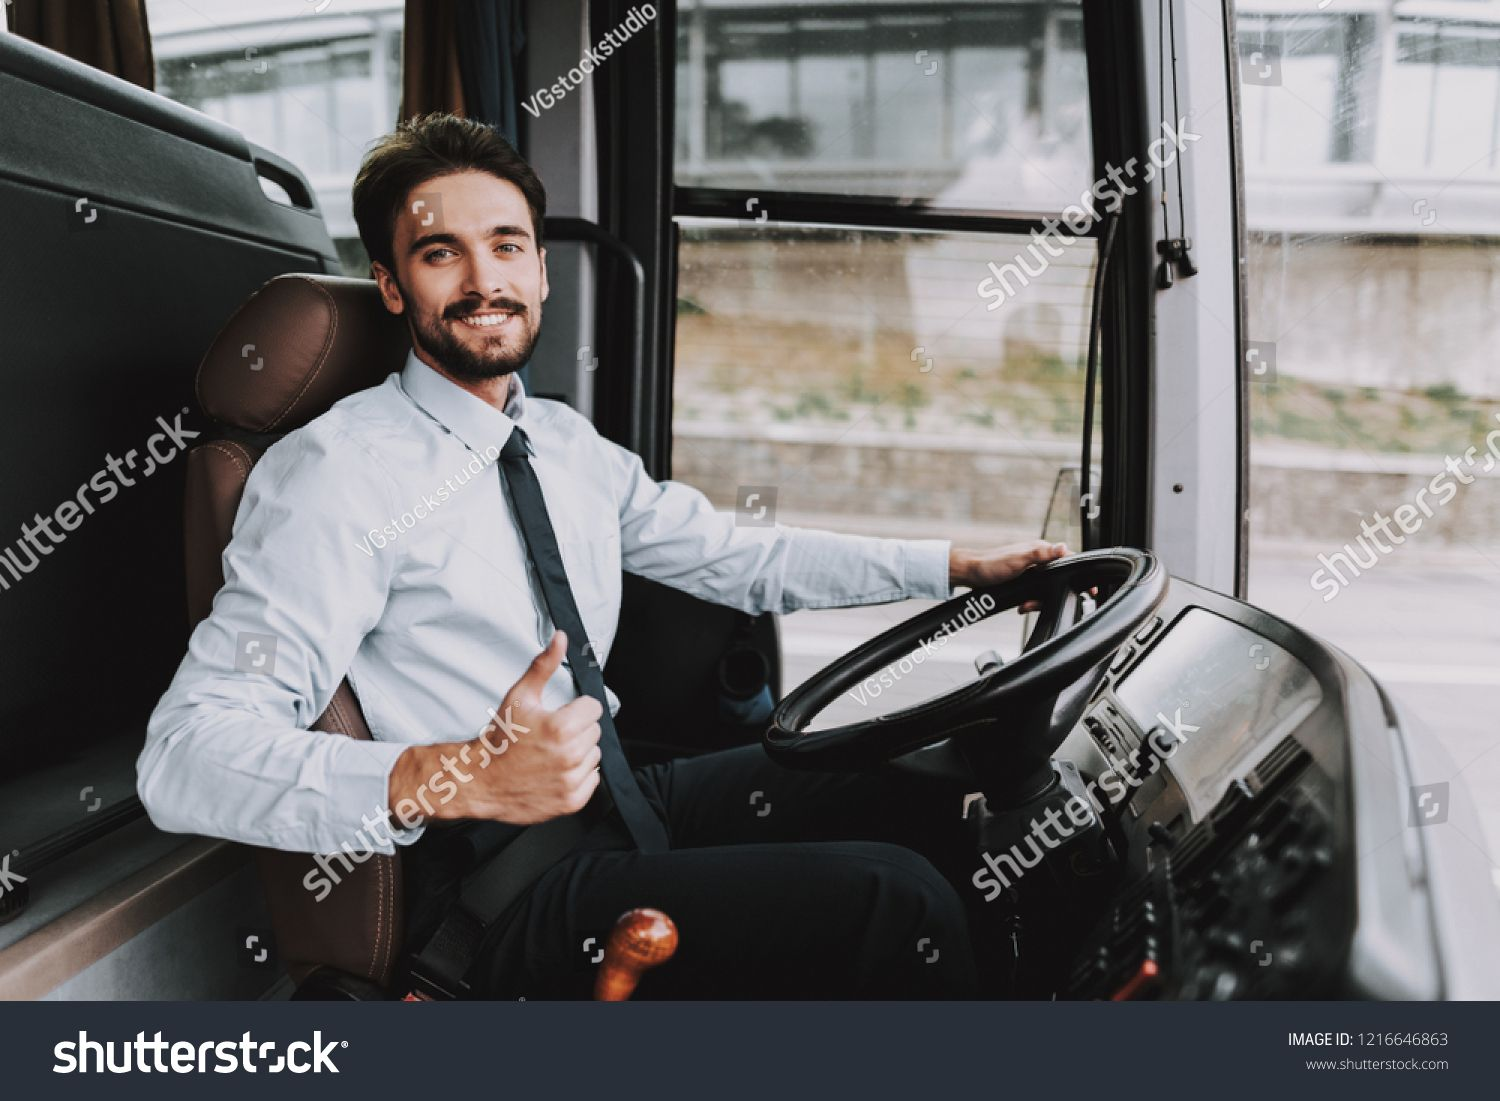 Smiling Man Driving Tour Bus Professional Driver Young Happy Man Wearing White Shirt And Black Tie Sitting On Driver Seat Travel And Tourism Smiling Man Bus